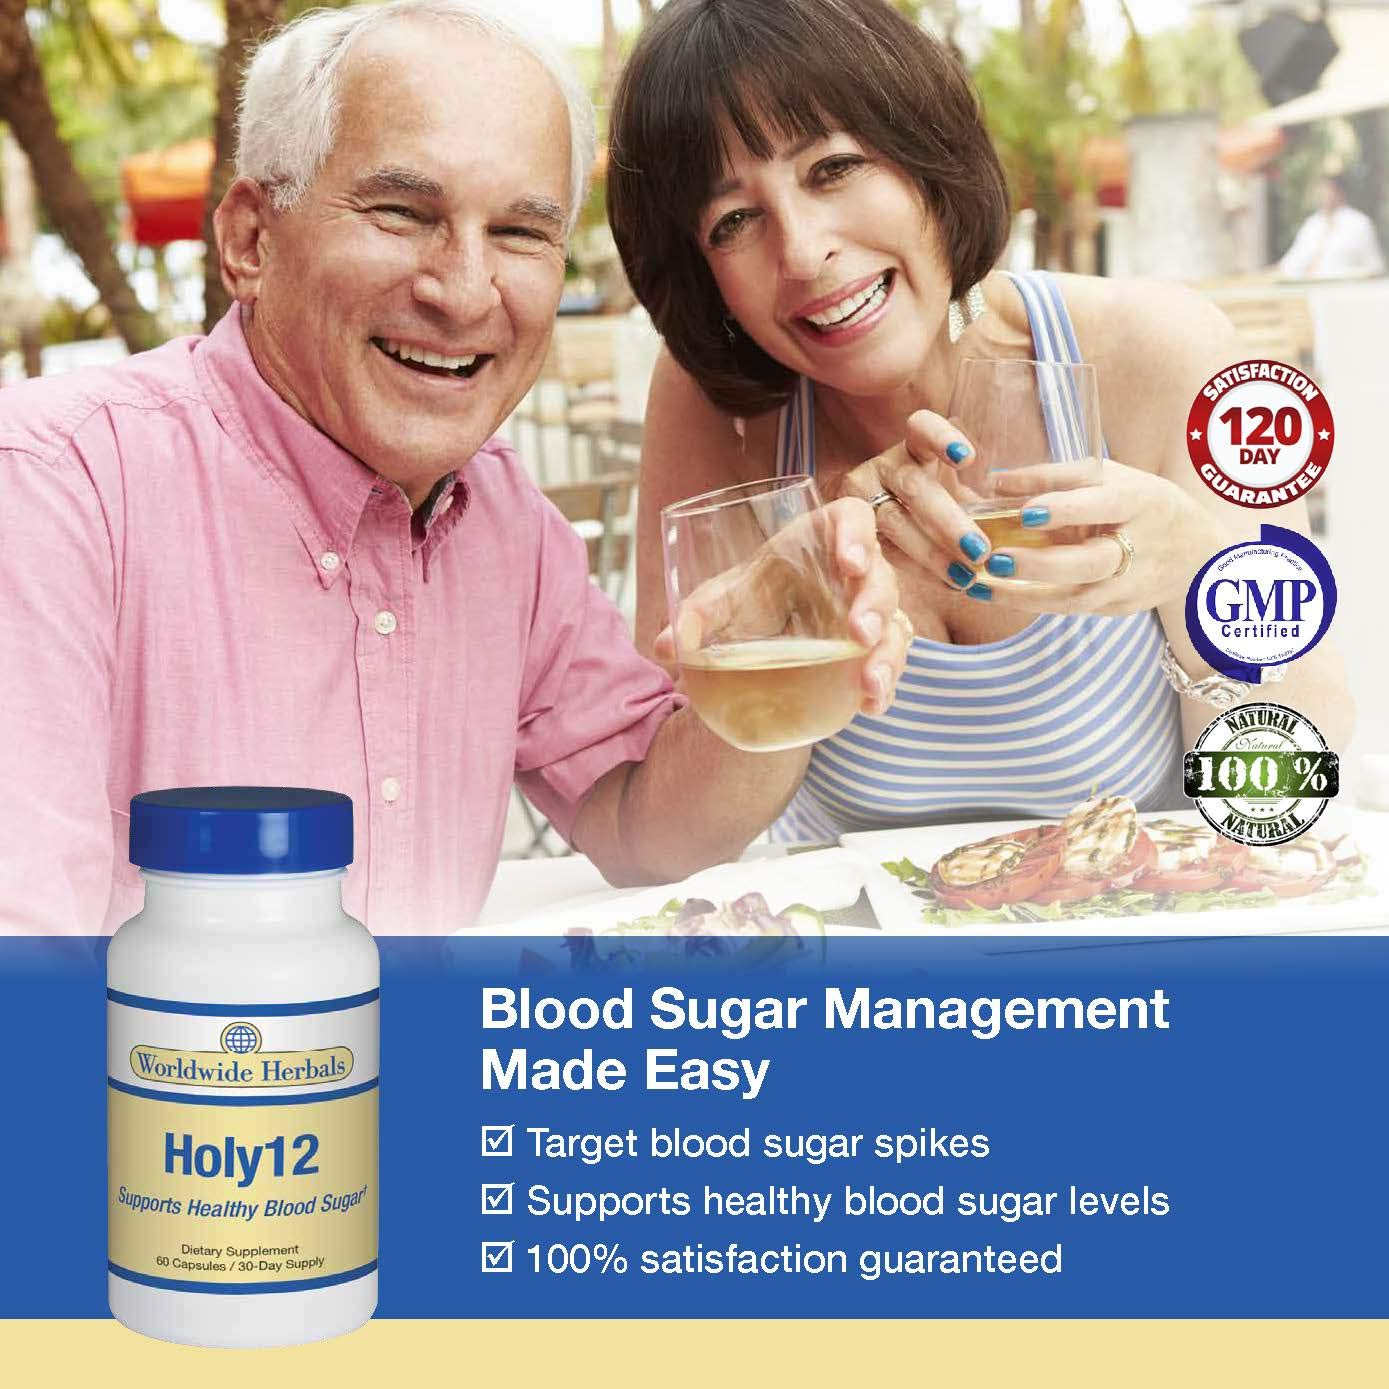 Holy 12 All-Natural Dietary Supplement Supports Healthy Blood Sugar Levels and addresses Blood Sugar Spikes. Promotes More Energy, Vibrant Health and Vigor. 90 Day Supply.